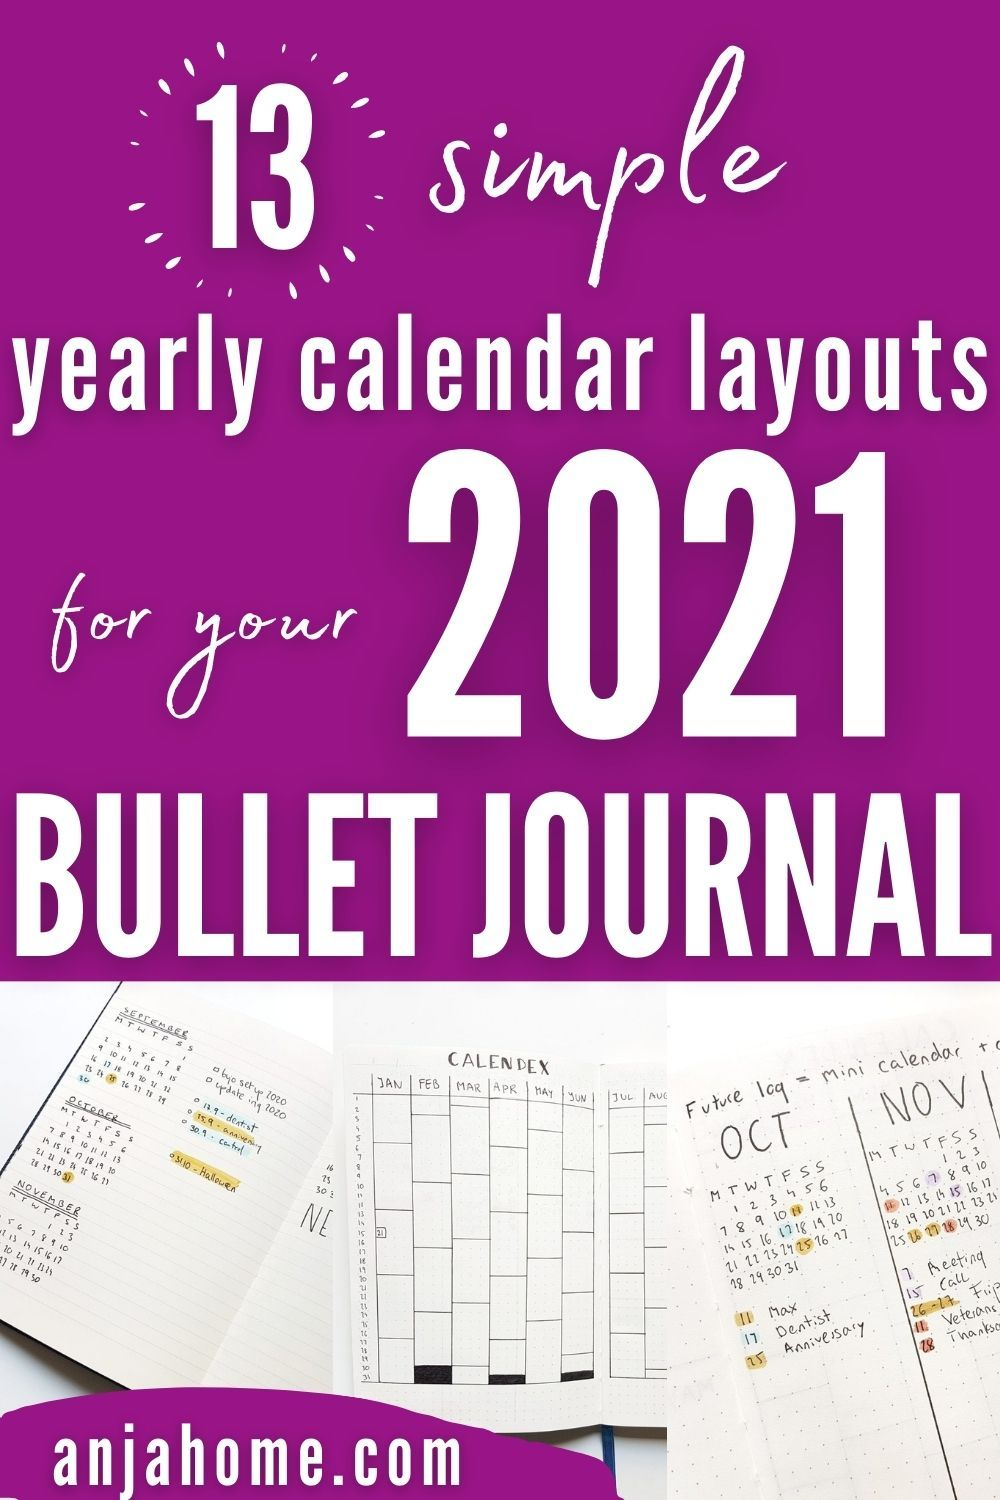 Bullet Journal Future Log Ideas For 2021 Anjahome Planner Bullet Journal Bullet Journal Month Bullet Journal